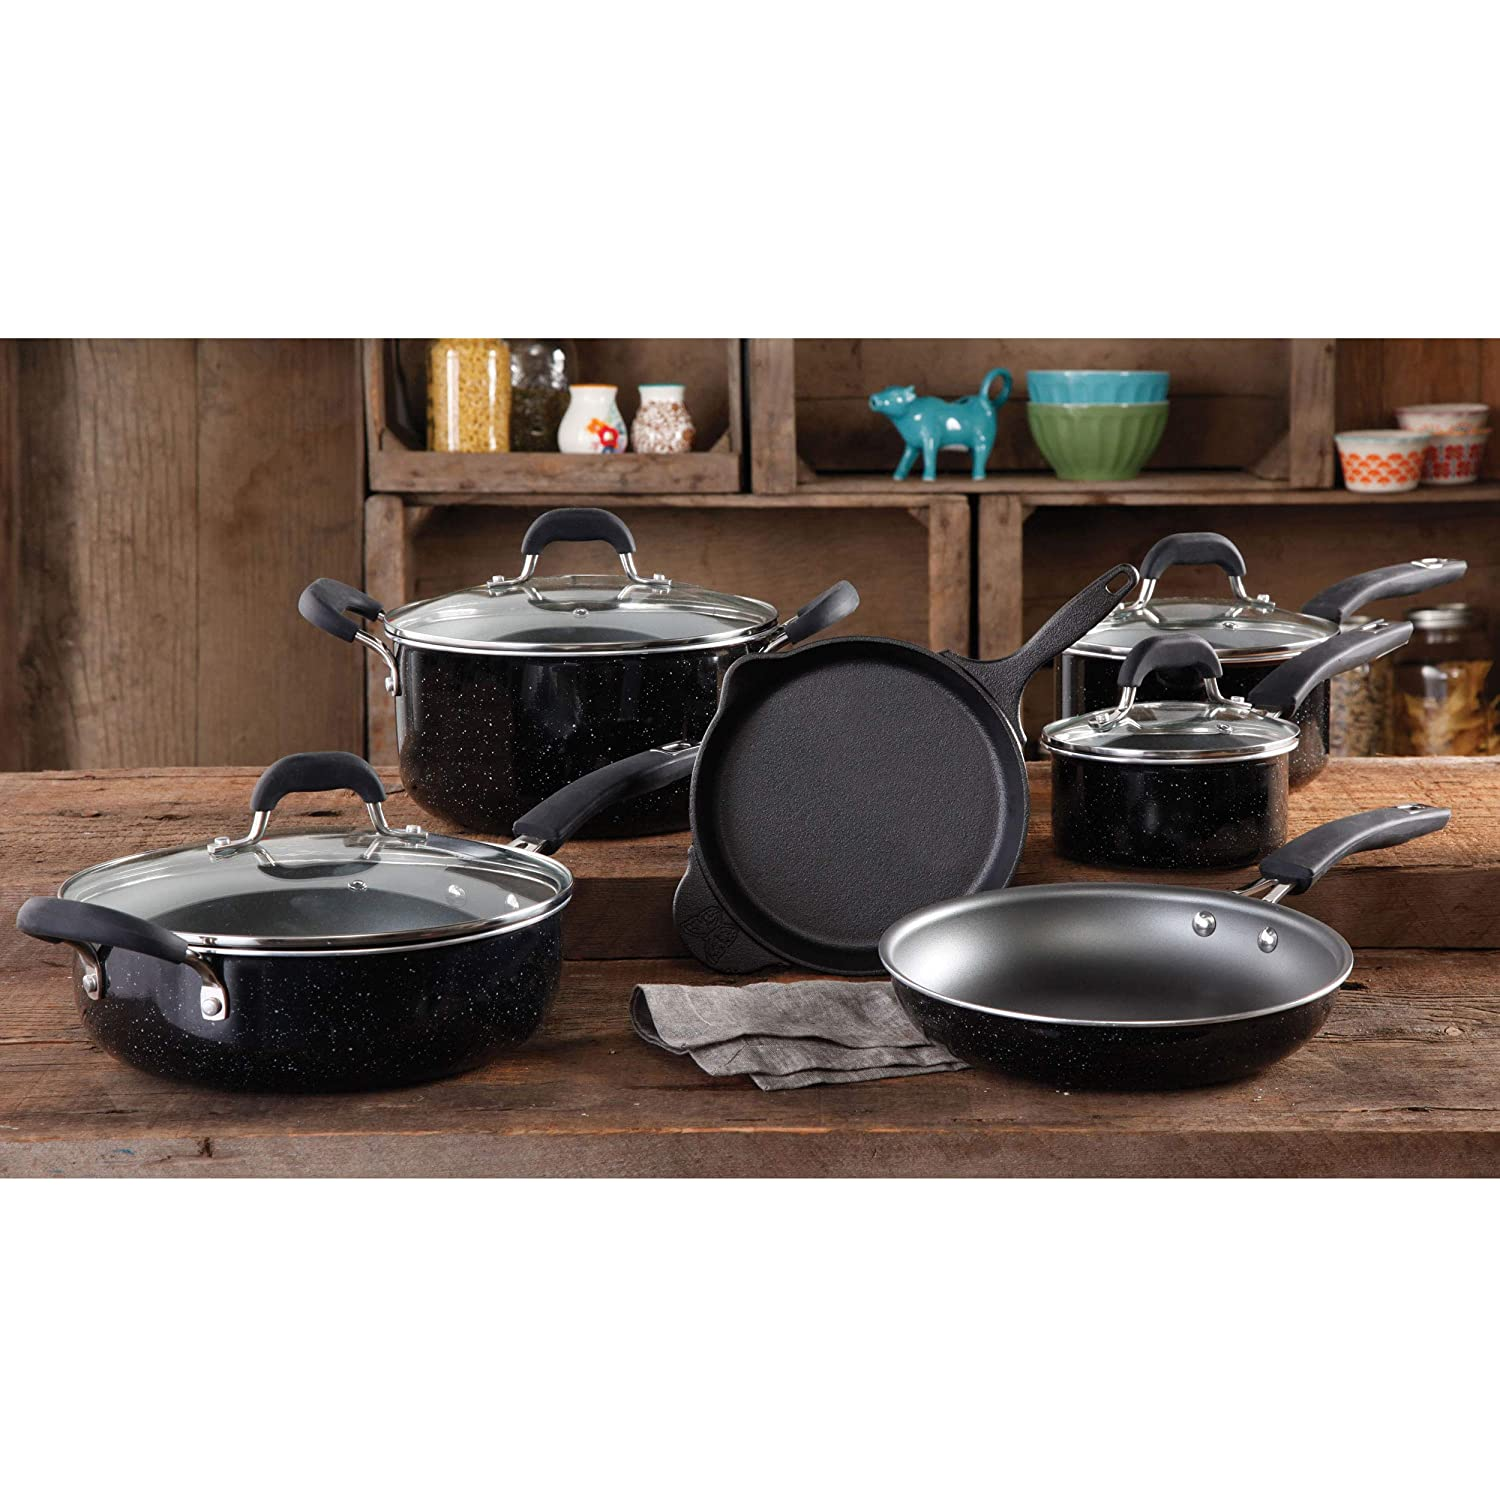 The Pioneer Woman Vintage Speckle 10-Piece Non-Stick Pre-Seasoned Cookware Set, Black